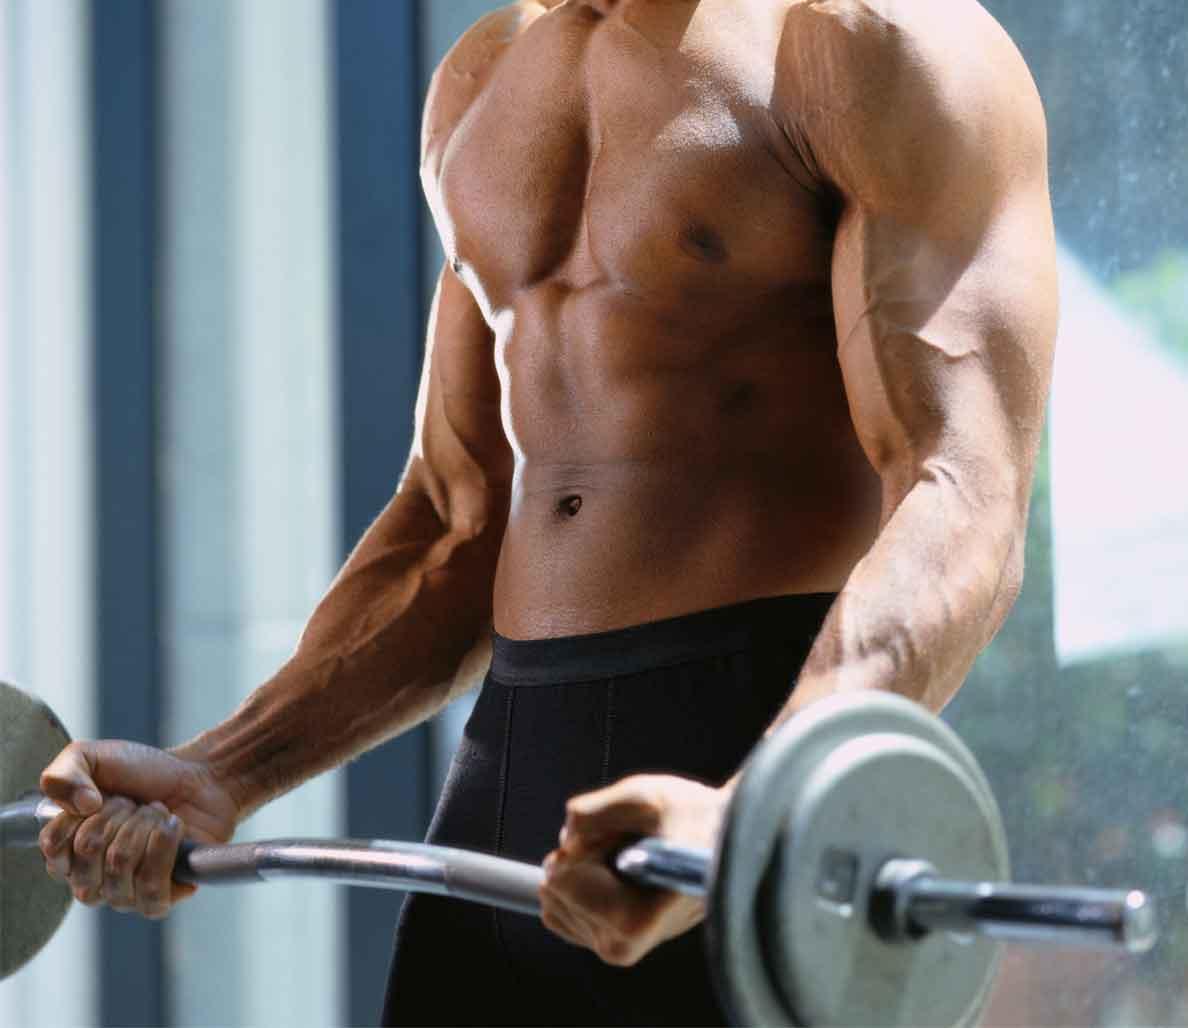 Pumped Up Shoulder and Arm Workout - Big Arms